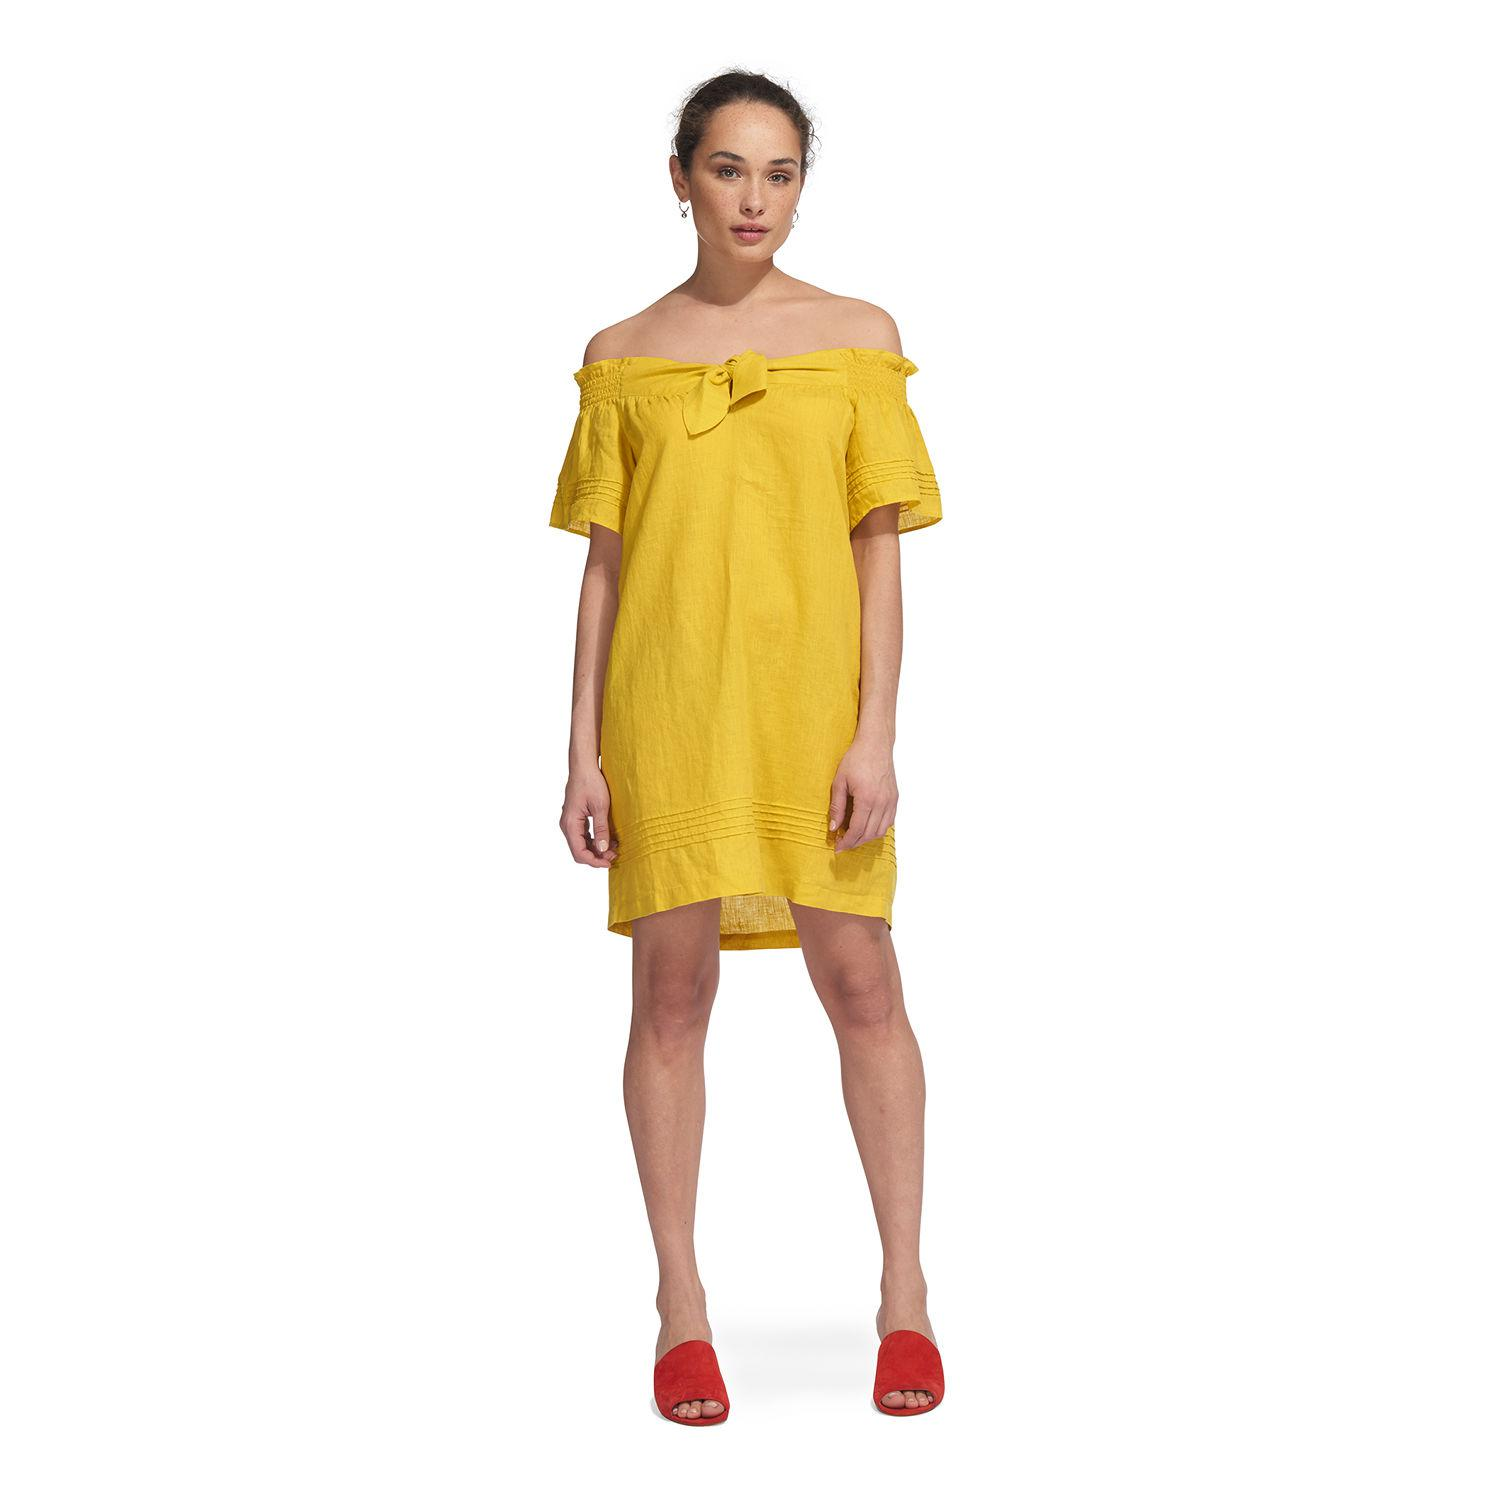 82ff13a2a3 Whistles - Yellow Linen Bardot Dress - Lyst. View fullscreen